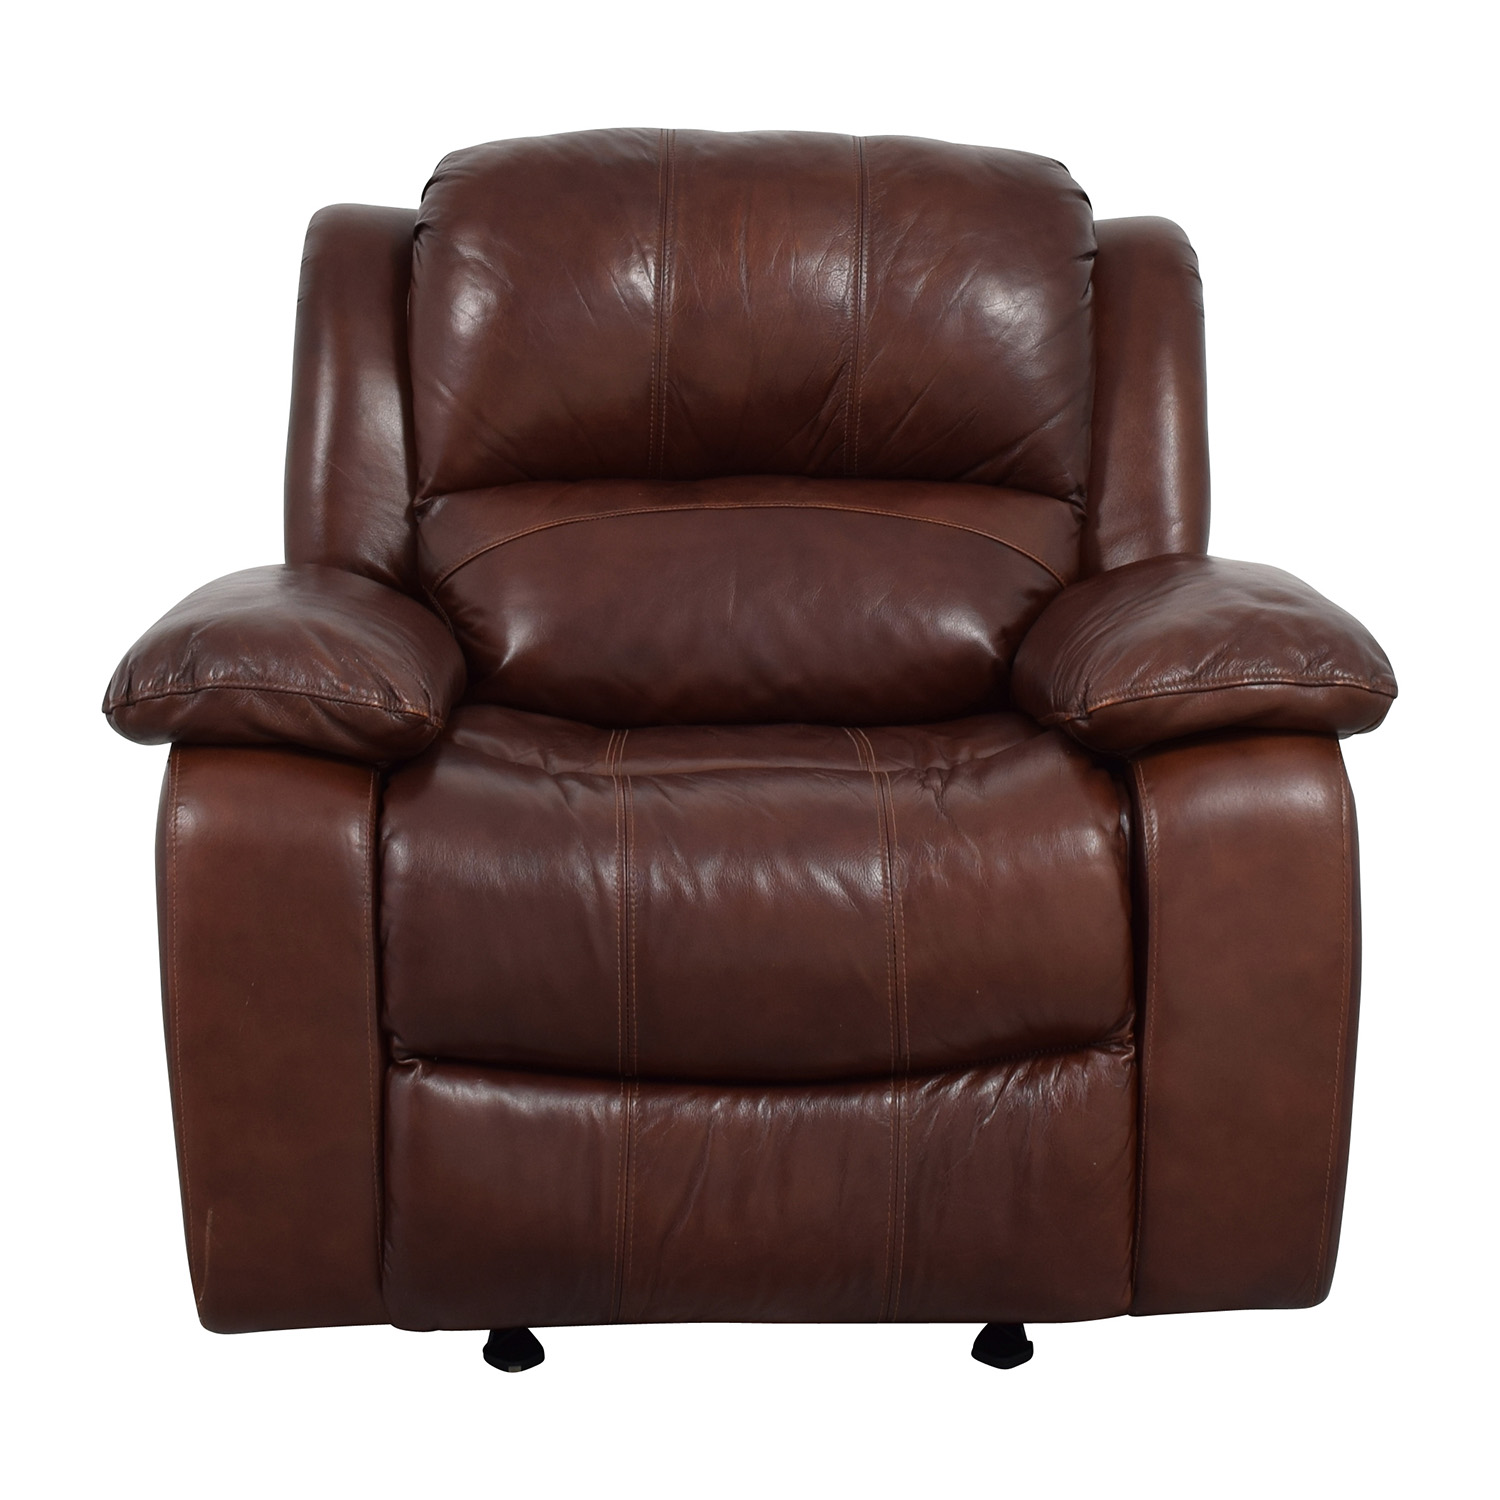 Raymour and Flanigan Bryant II Leather Glider Recliner Raymour and Flanigan